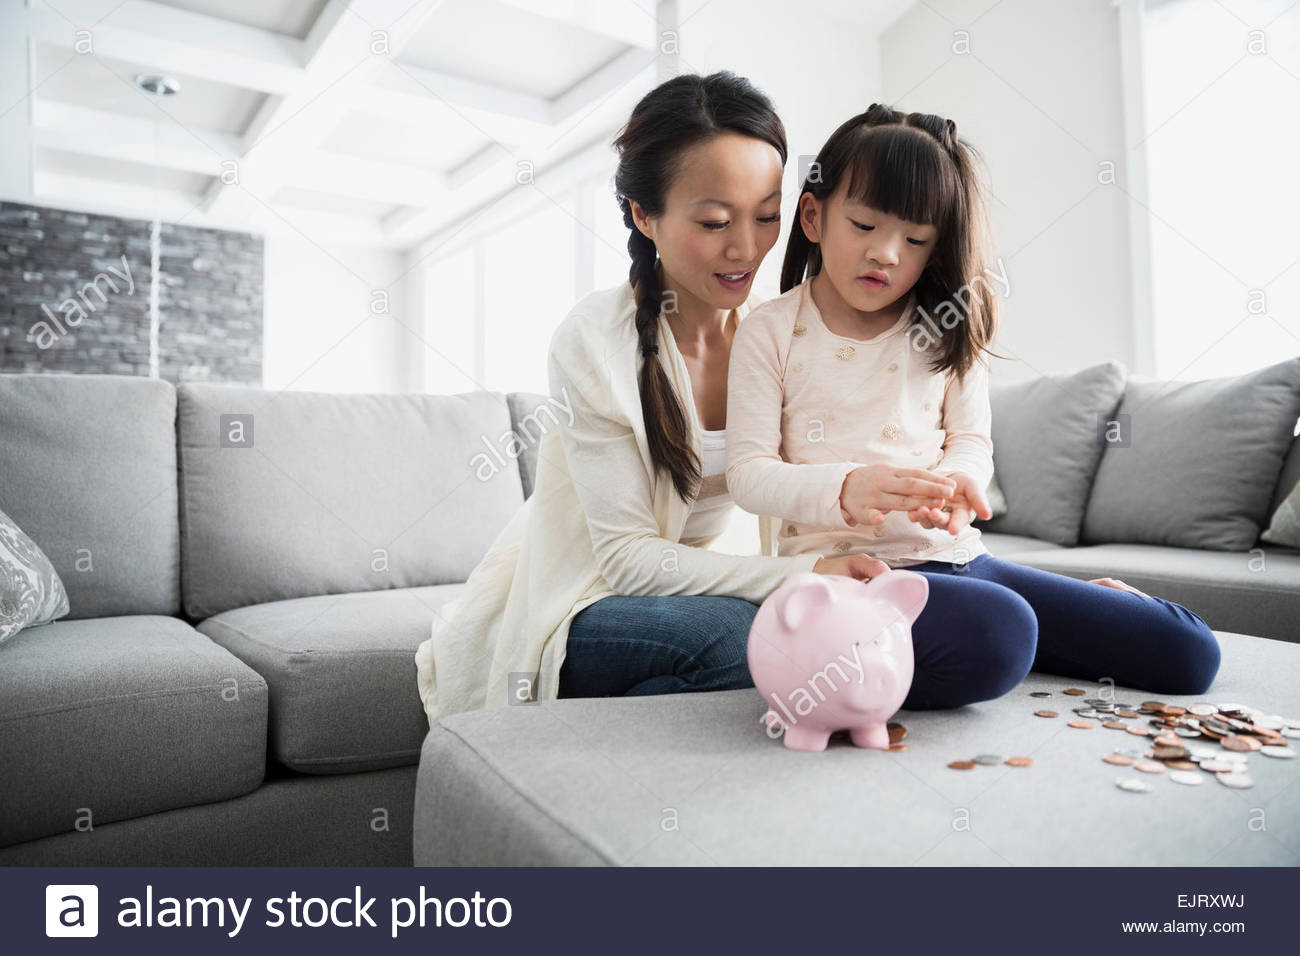 Mother and daughter counting coins from piggy bank - Stock Image